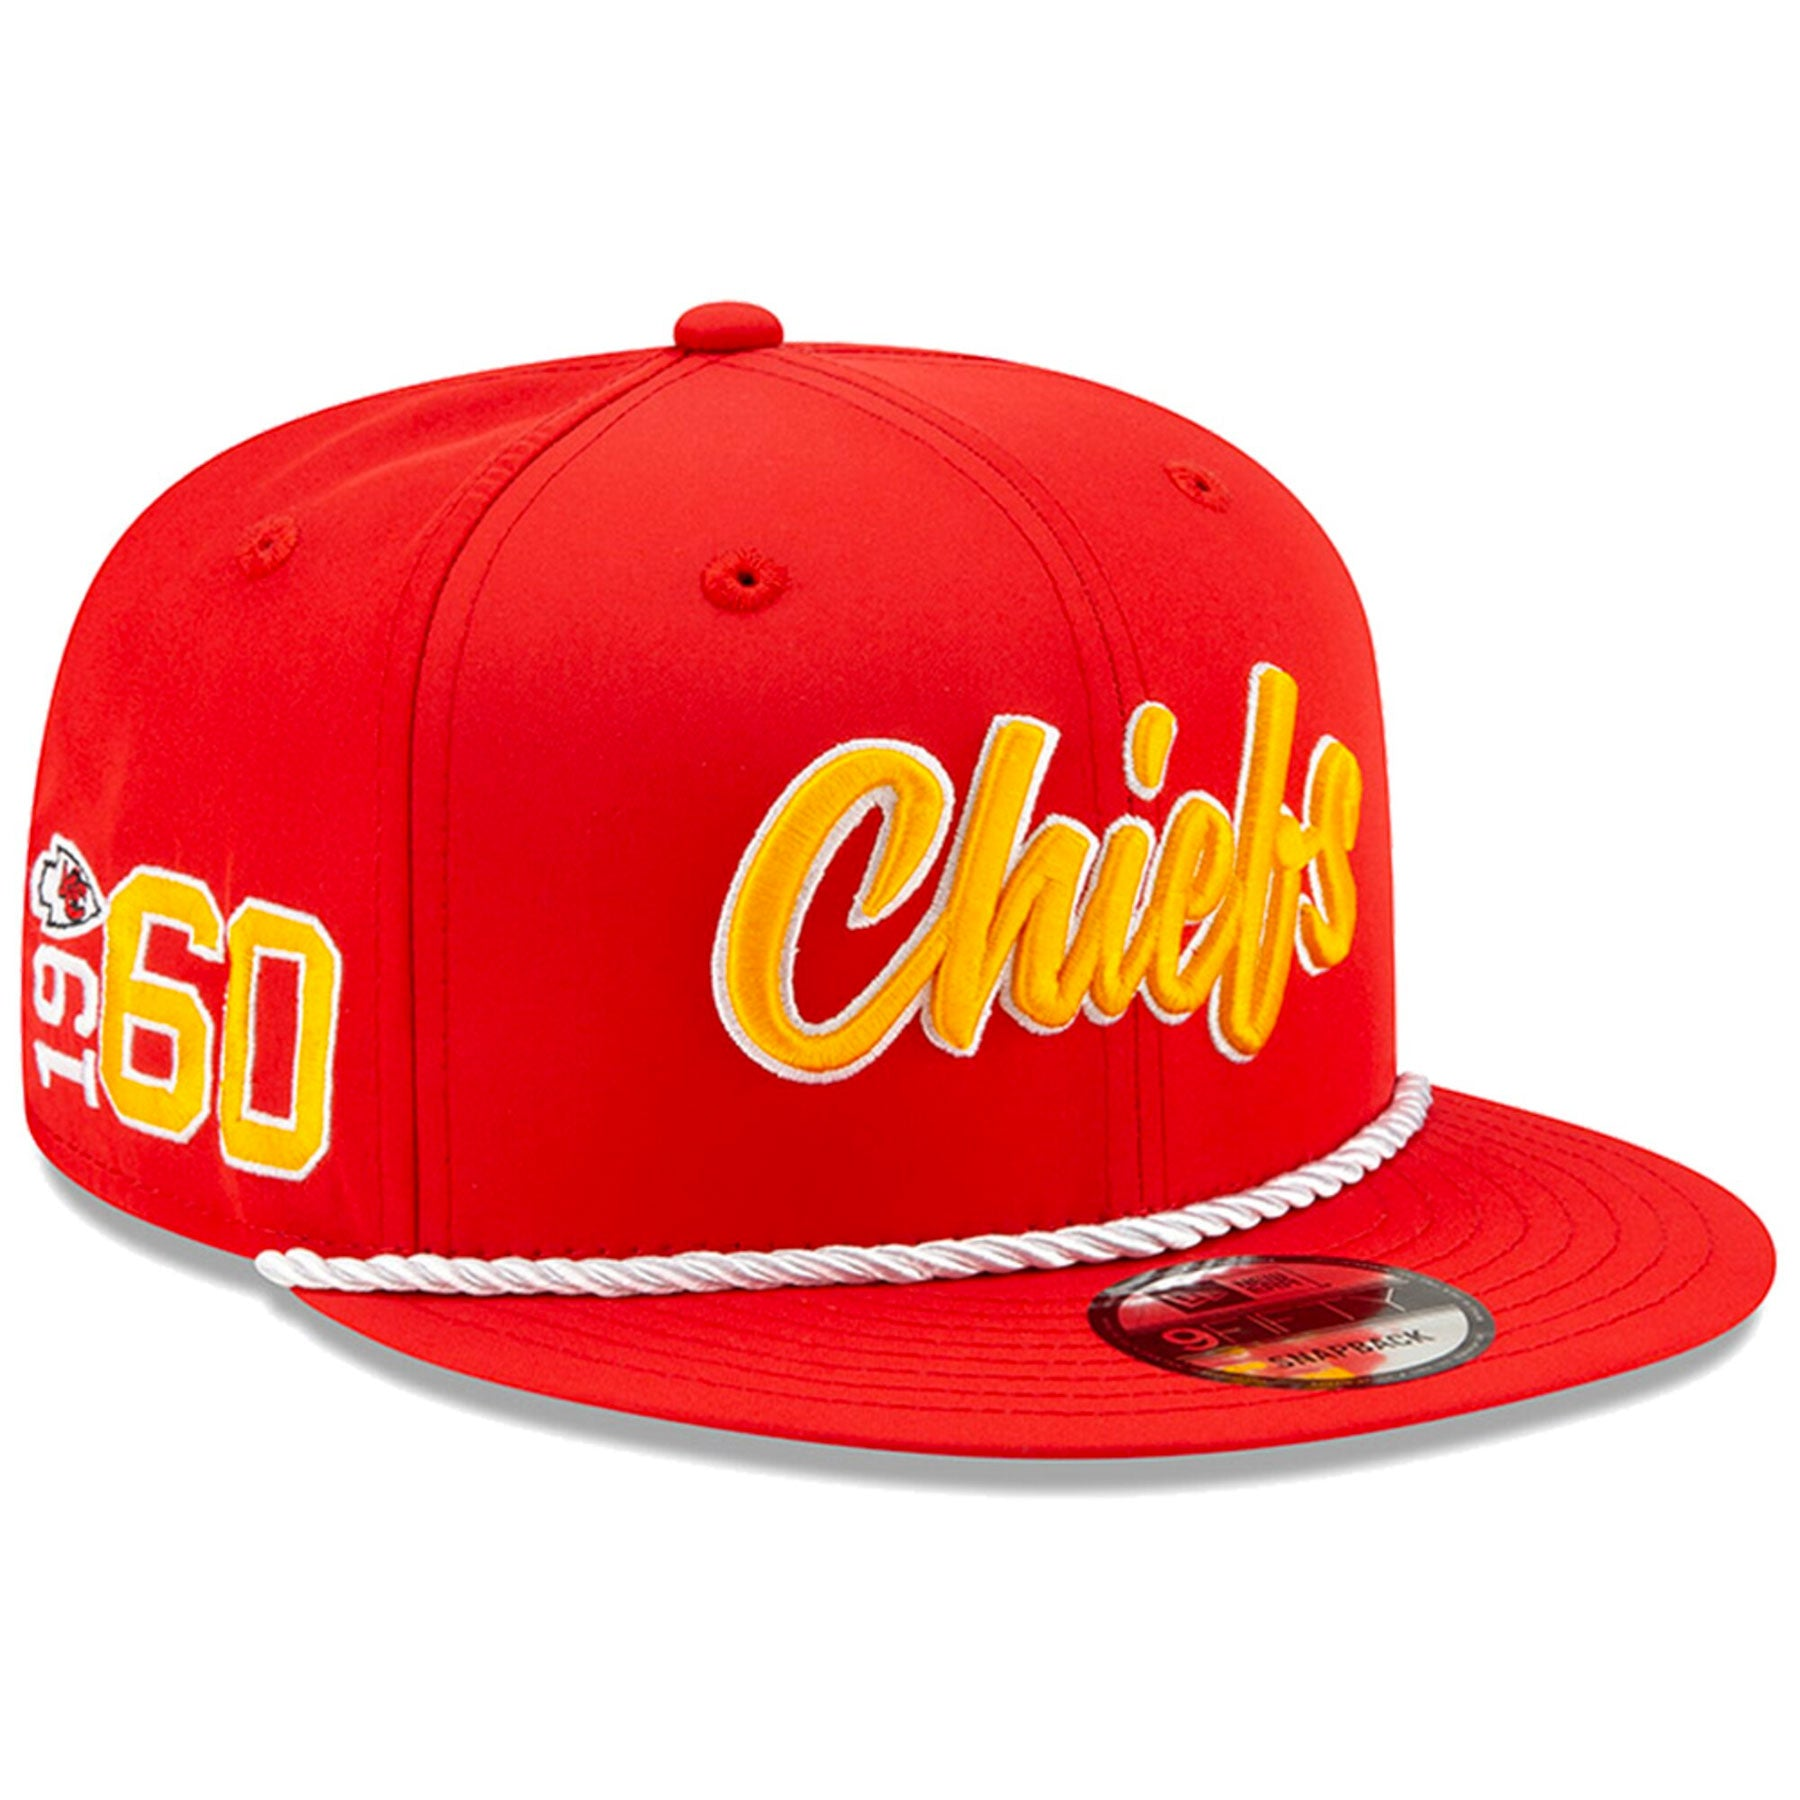 94549801 Kansas City Chiefs New Era 2019 NFL On Field Sideline Home Official 9FIFTY  1960s Red Snapback Hat